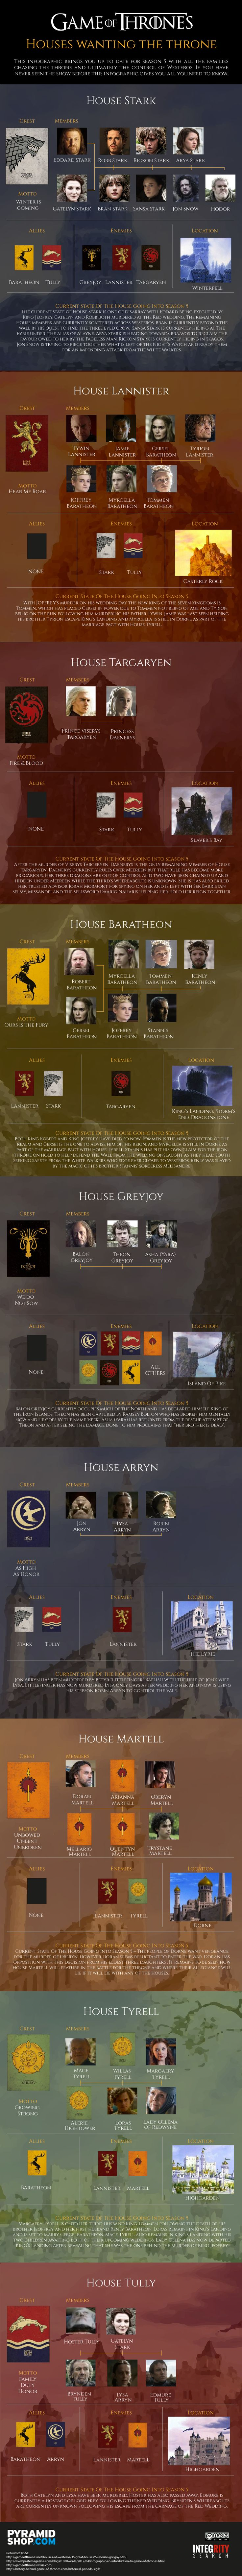 Game Of Thrones - Houses Wanting The Throne